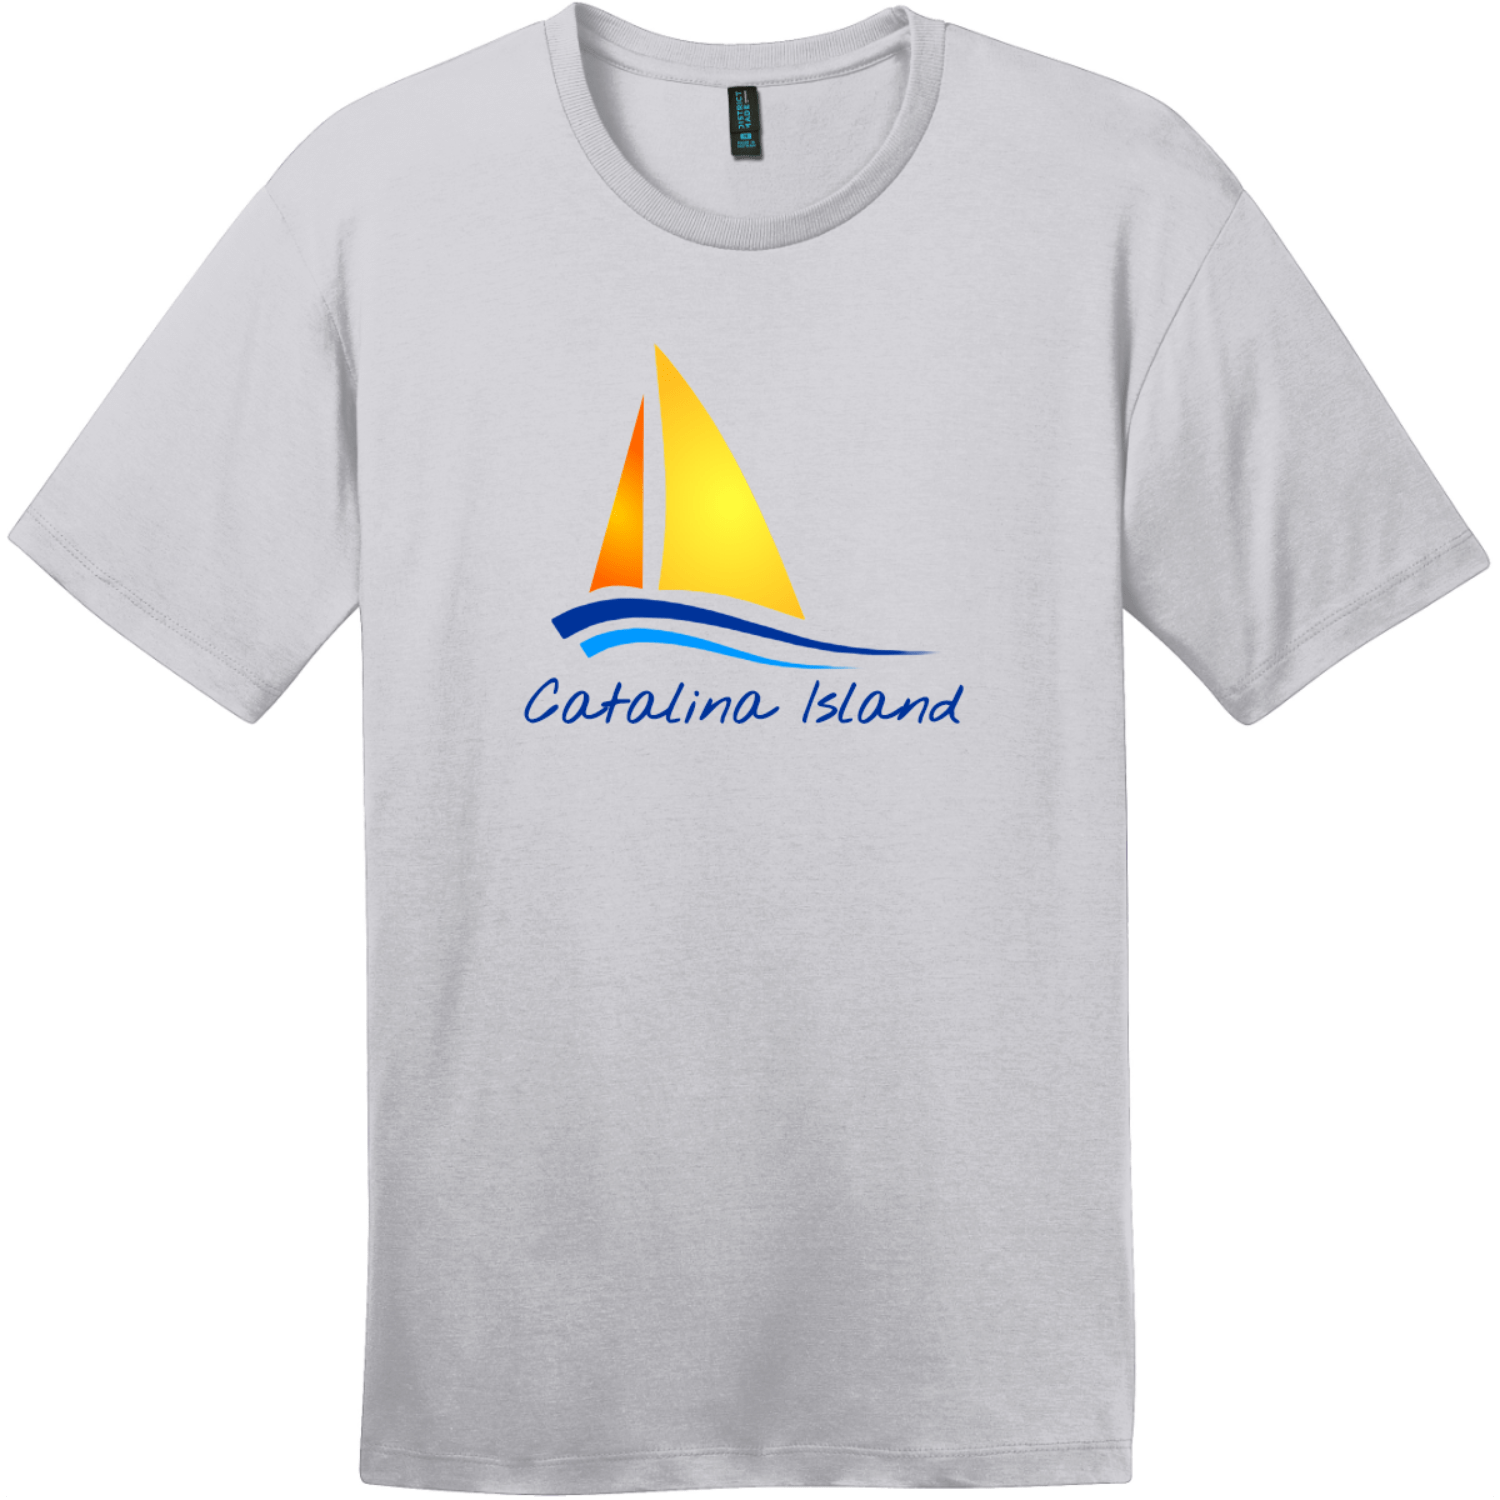 Catalina Island Sailboat T-Shirt Silver District Perfect Weight Tee DT104